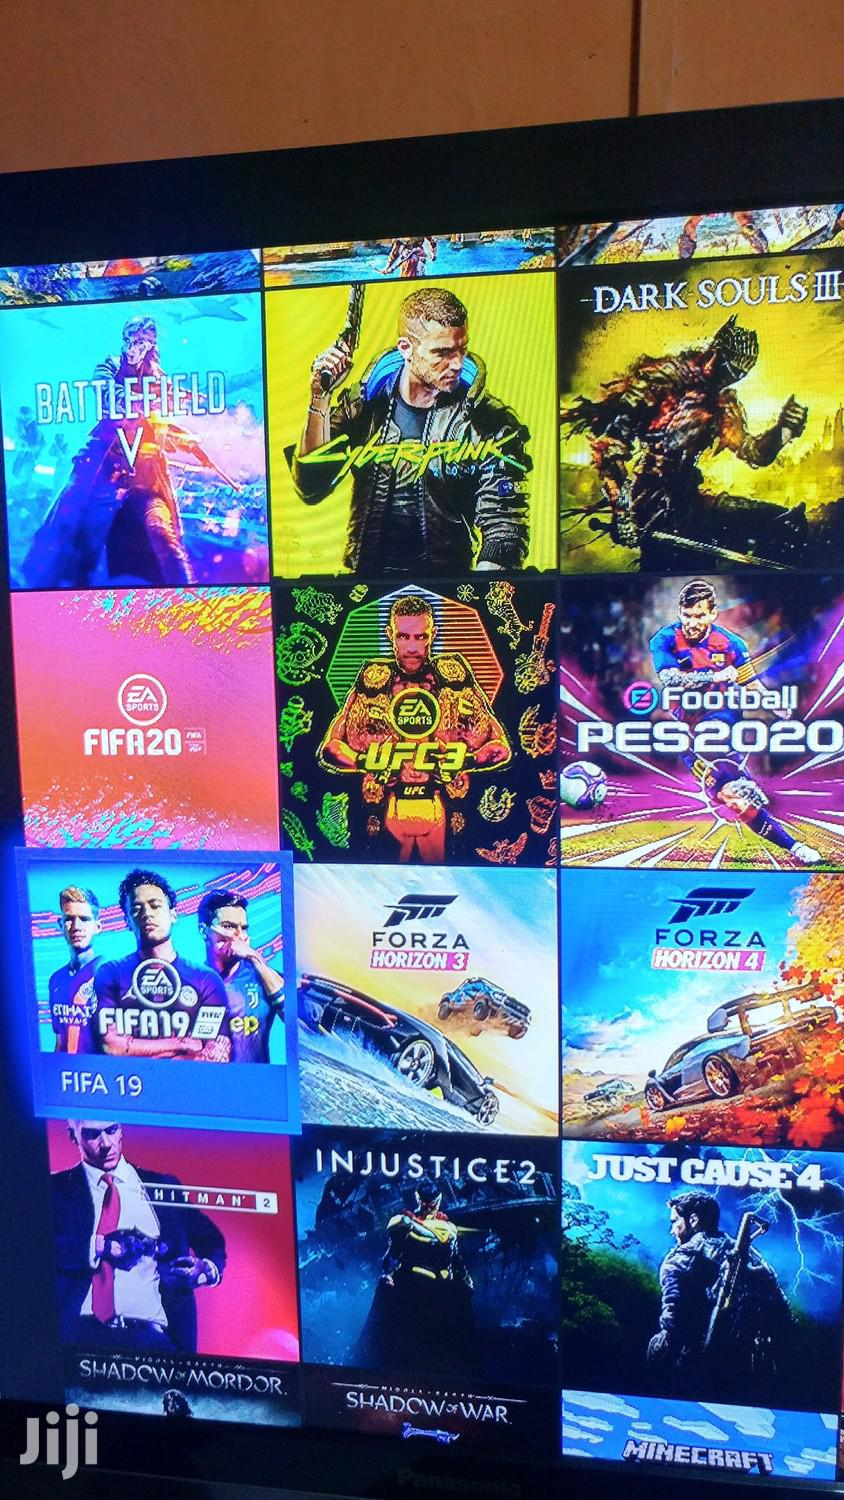 Archive: Xbox One S With 15 Games